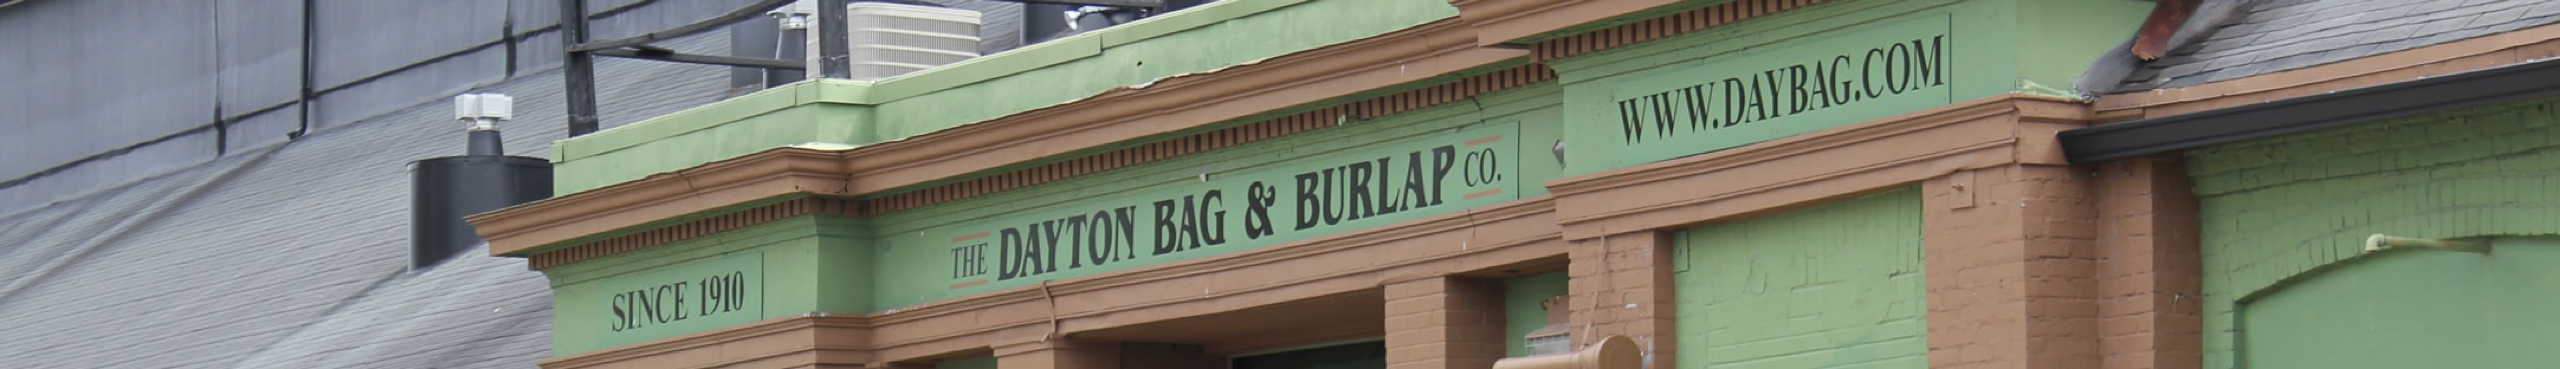 Dayton Bag Burlap Locations Cover